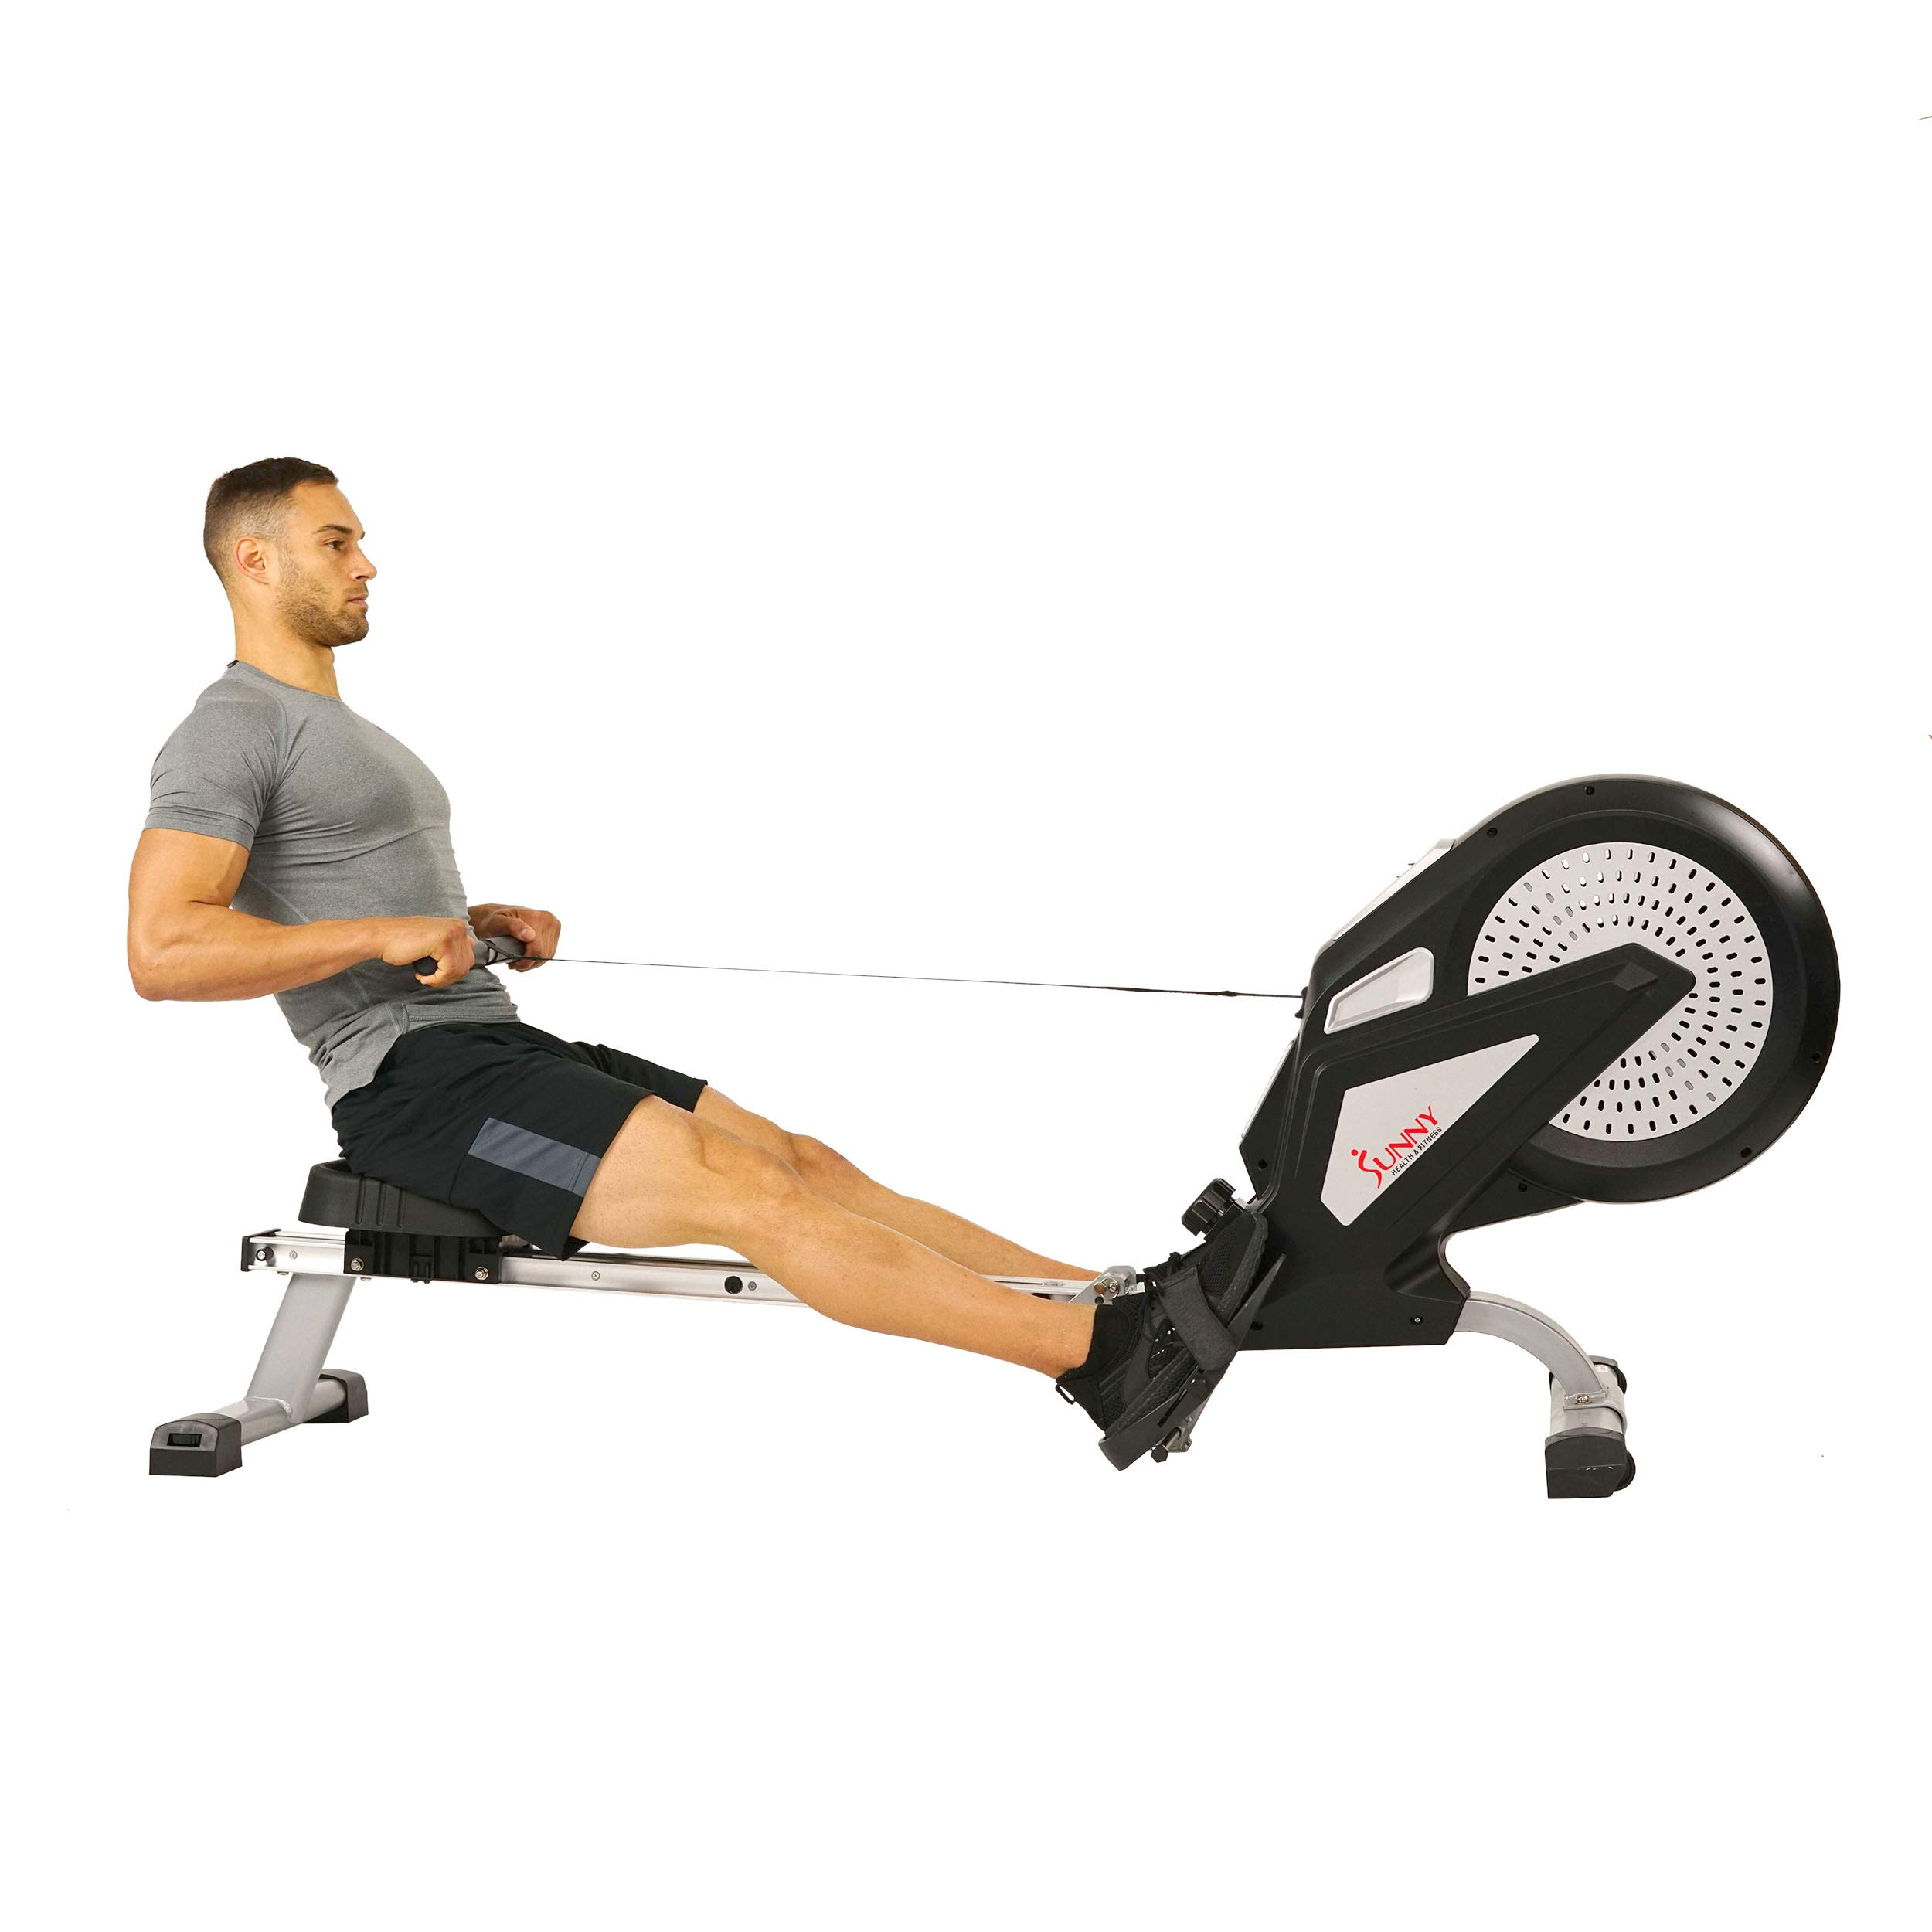 Sunny Health & Fitness Air Rower Rowing Machine w/ LCD Monitor, Dual Belt and Air Resistance SF-RW5623 by Sunny Health & Fitness (Image #3)